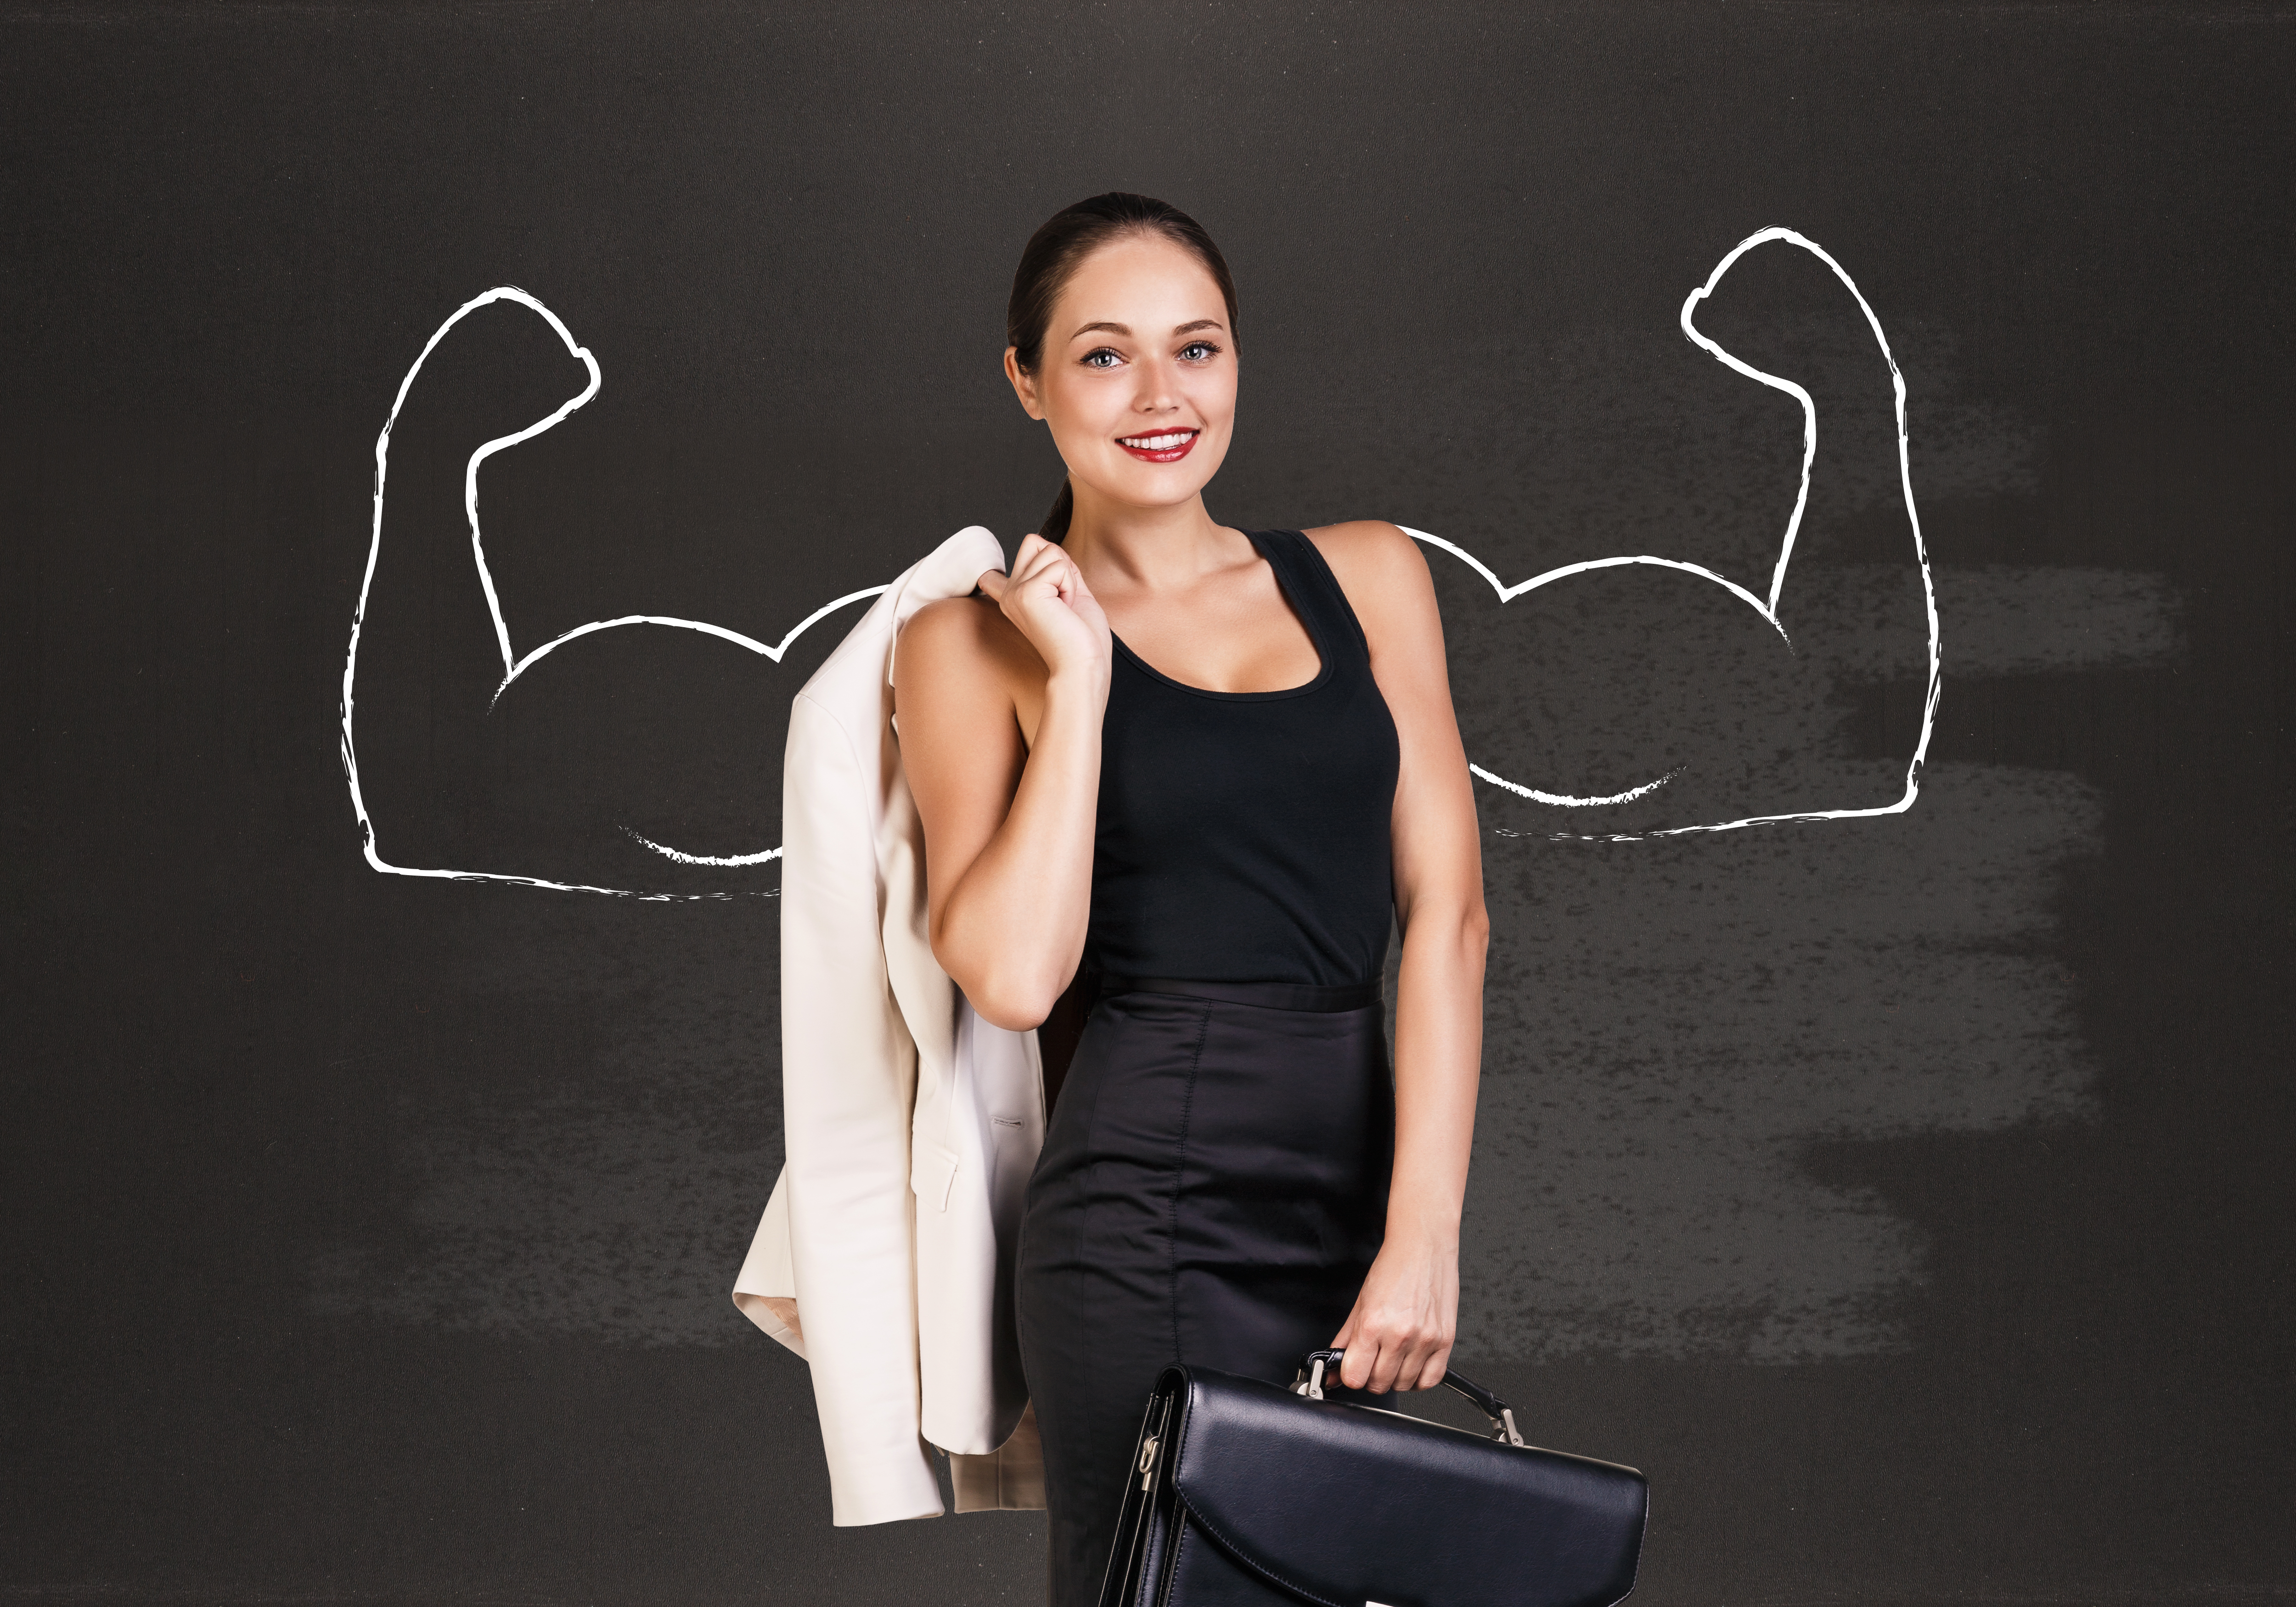 unleashing-women-chalk-arms.jpg